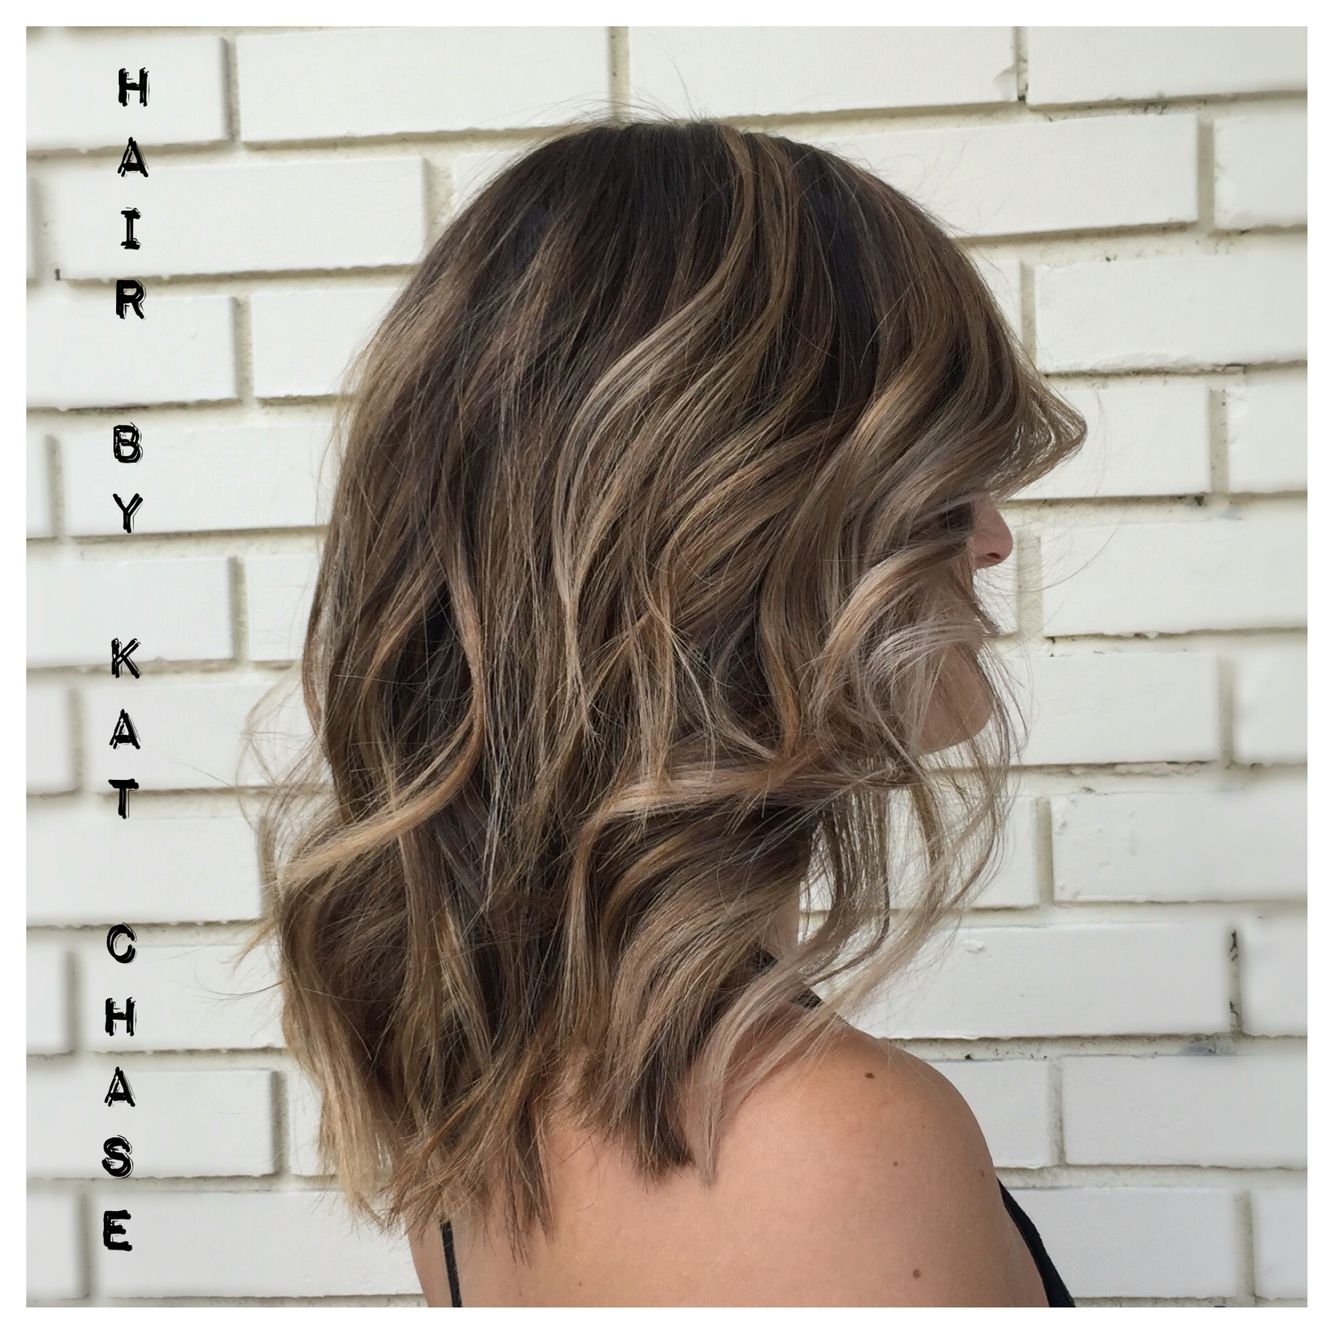 Ash blonde balayage highlights on medium hair hair pinterest ash blonde balayage highlights on medium hair pmusecretfo Gallery